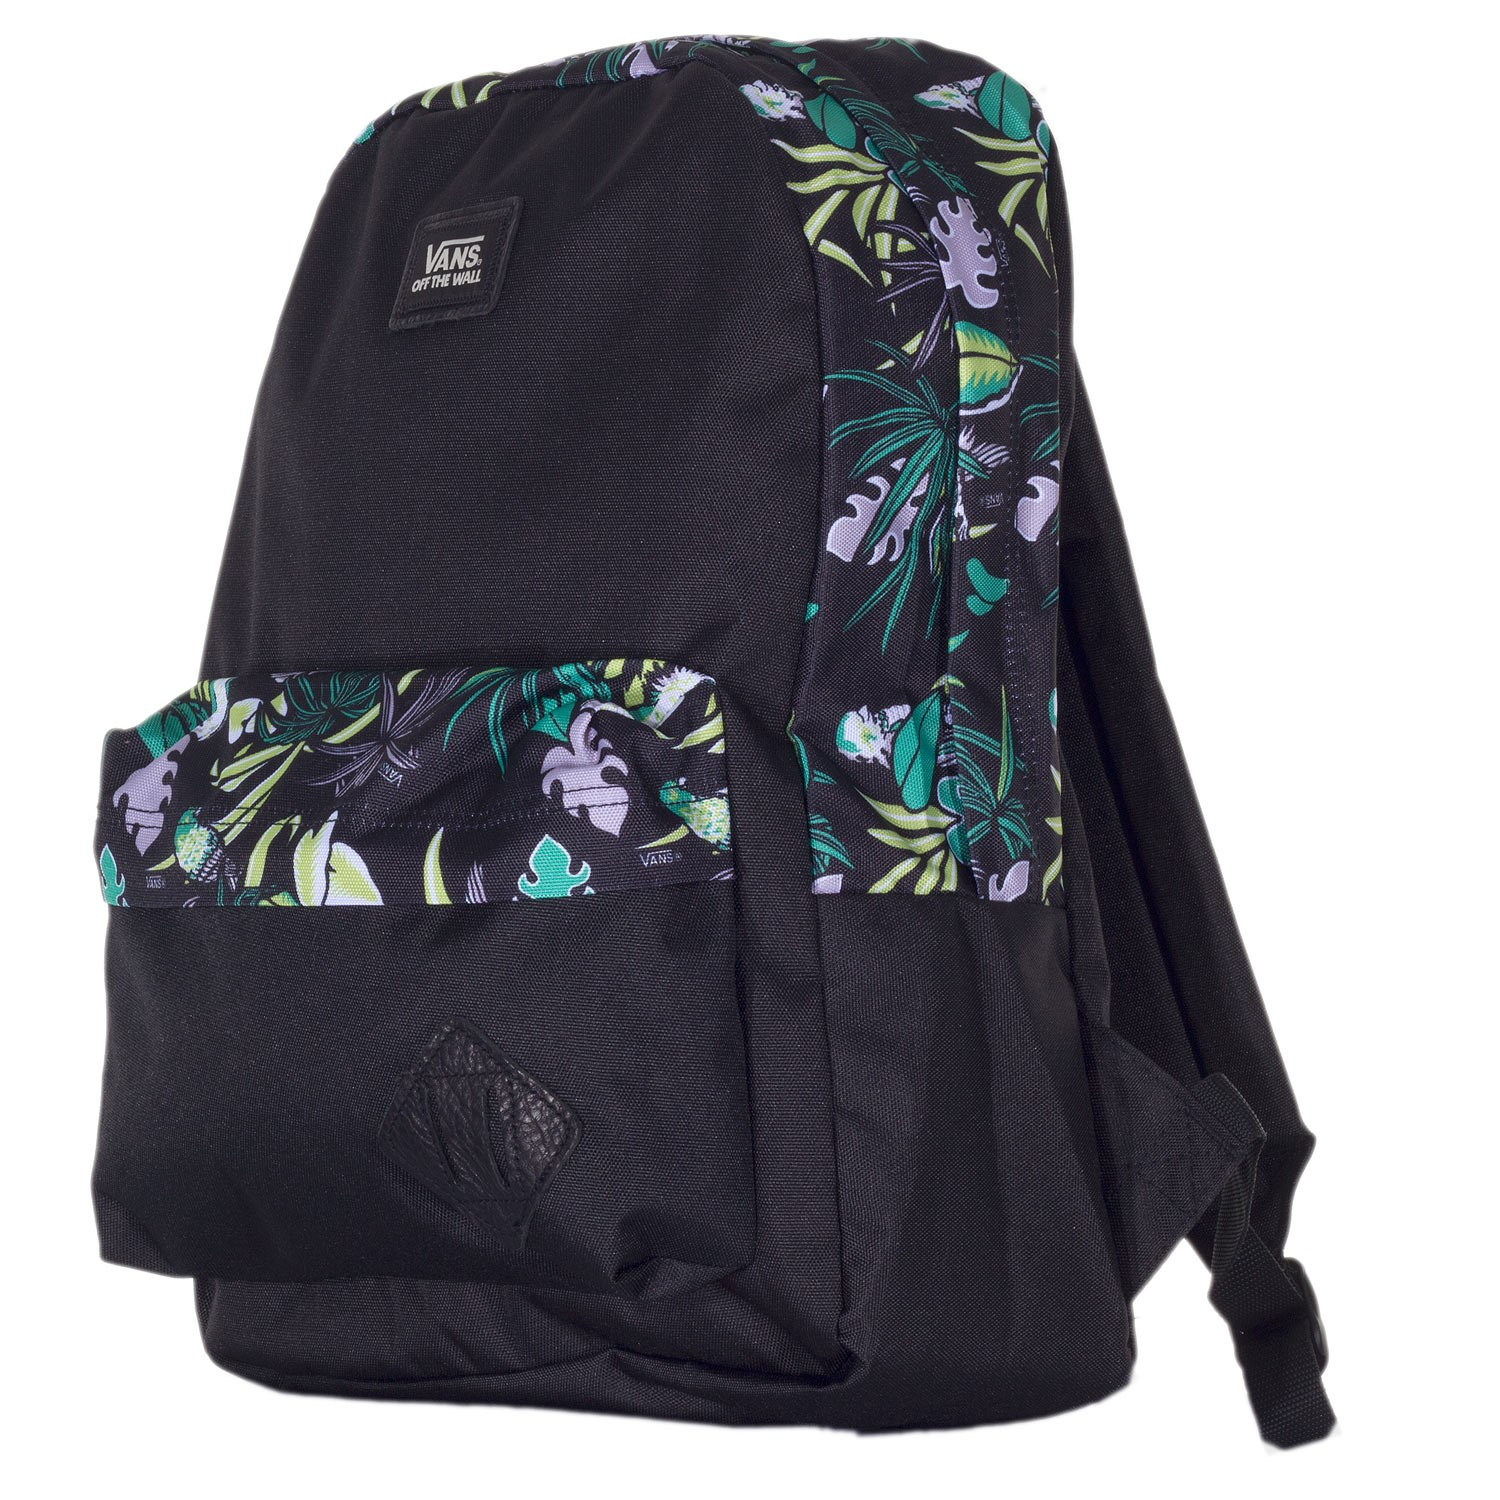 4795da91ddf Vans Old Skool II Backpack Van Doren